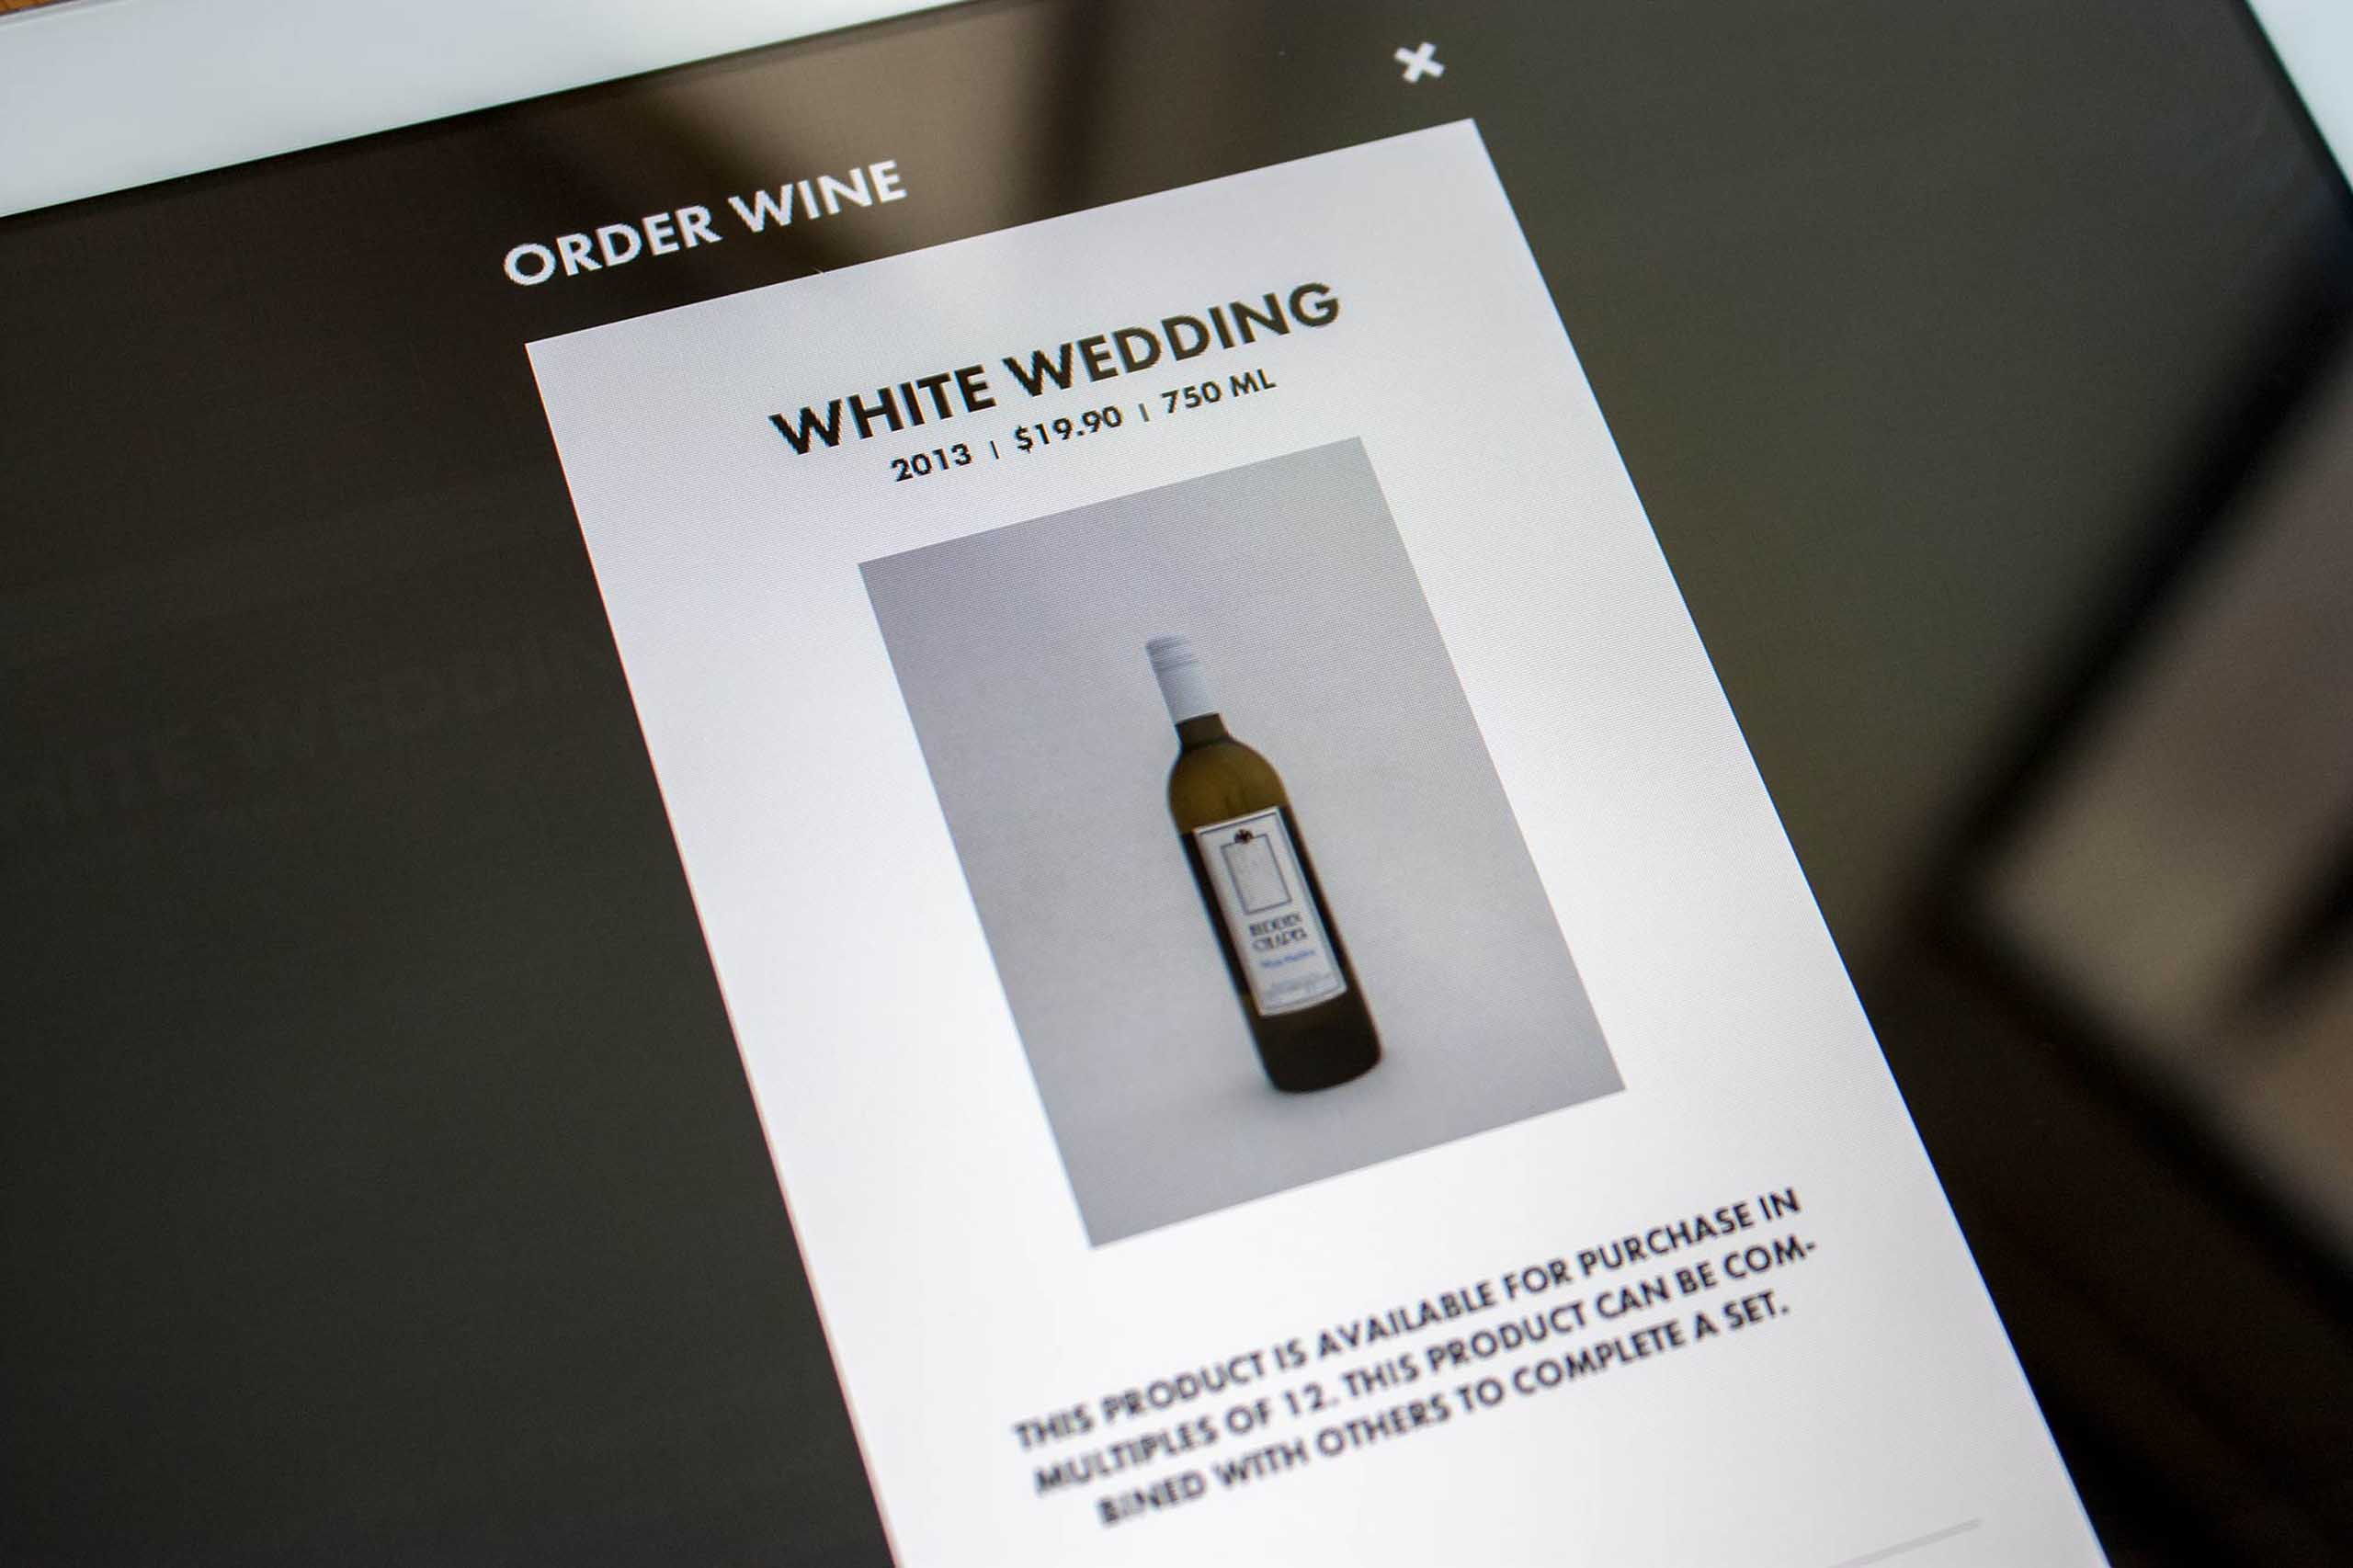 Add to cart modal for White Wedding wine by Hidden Chapel — by Yagnyuk.